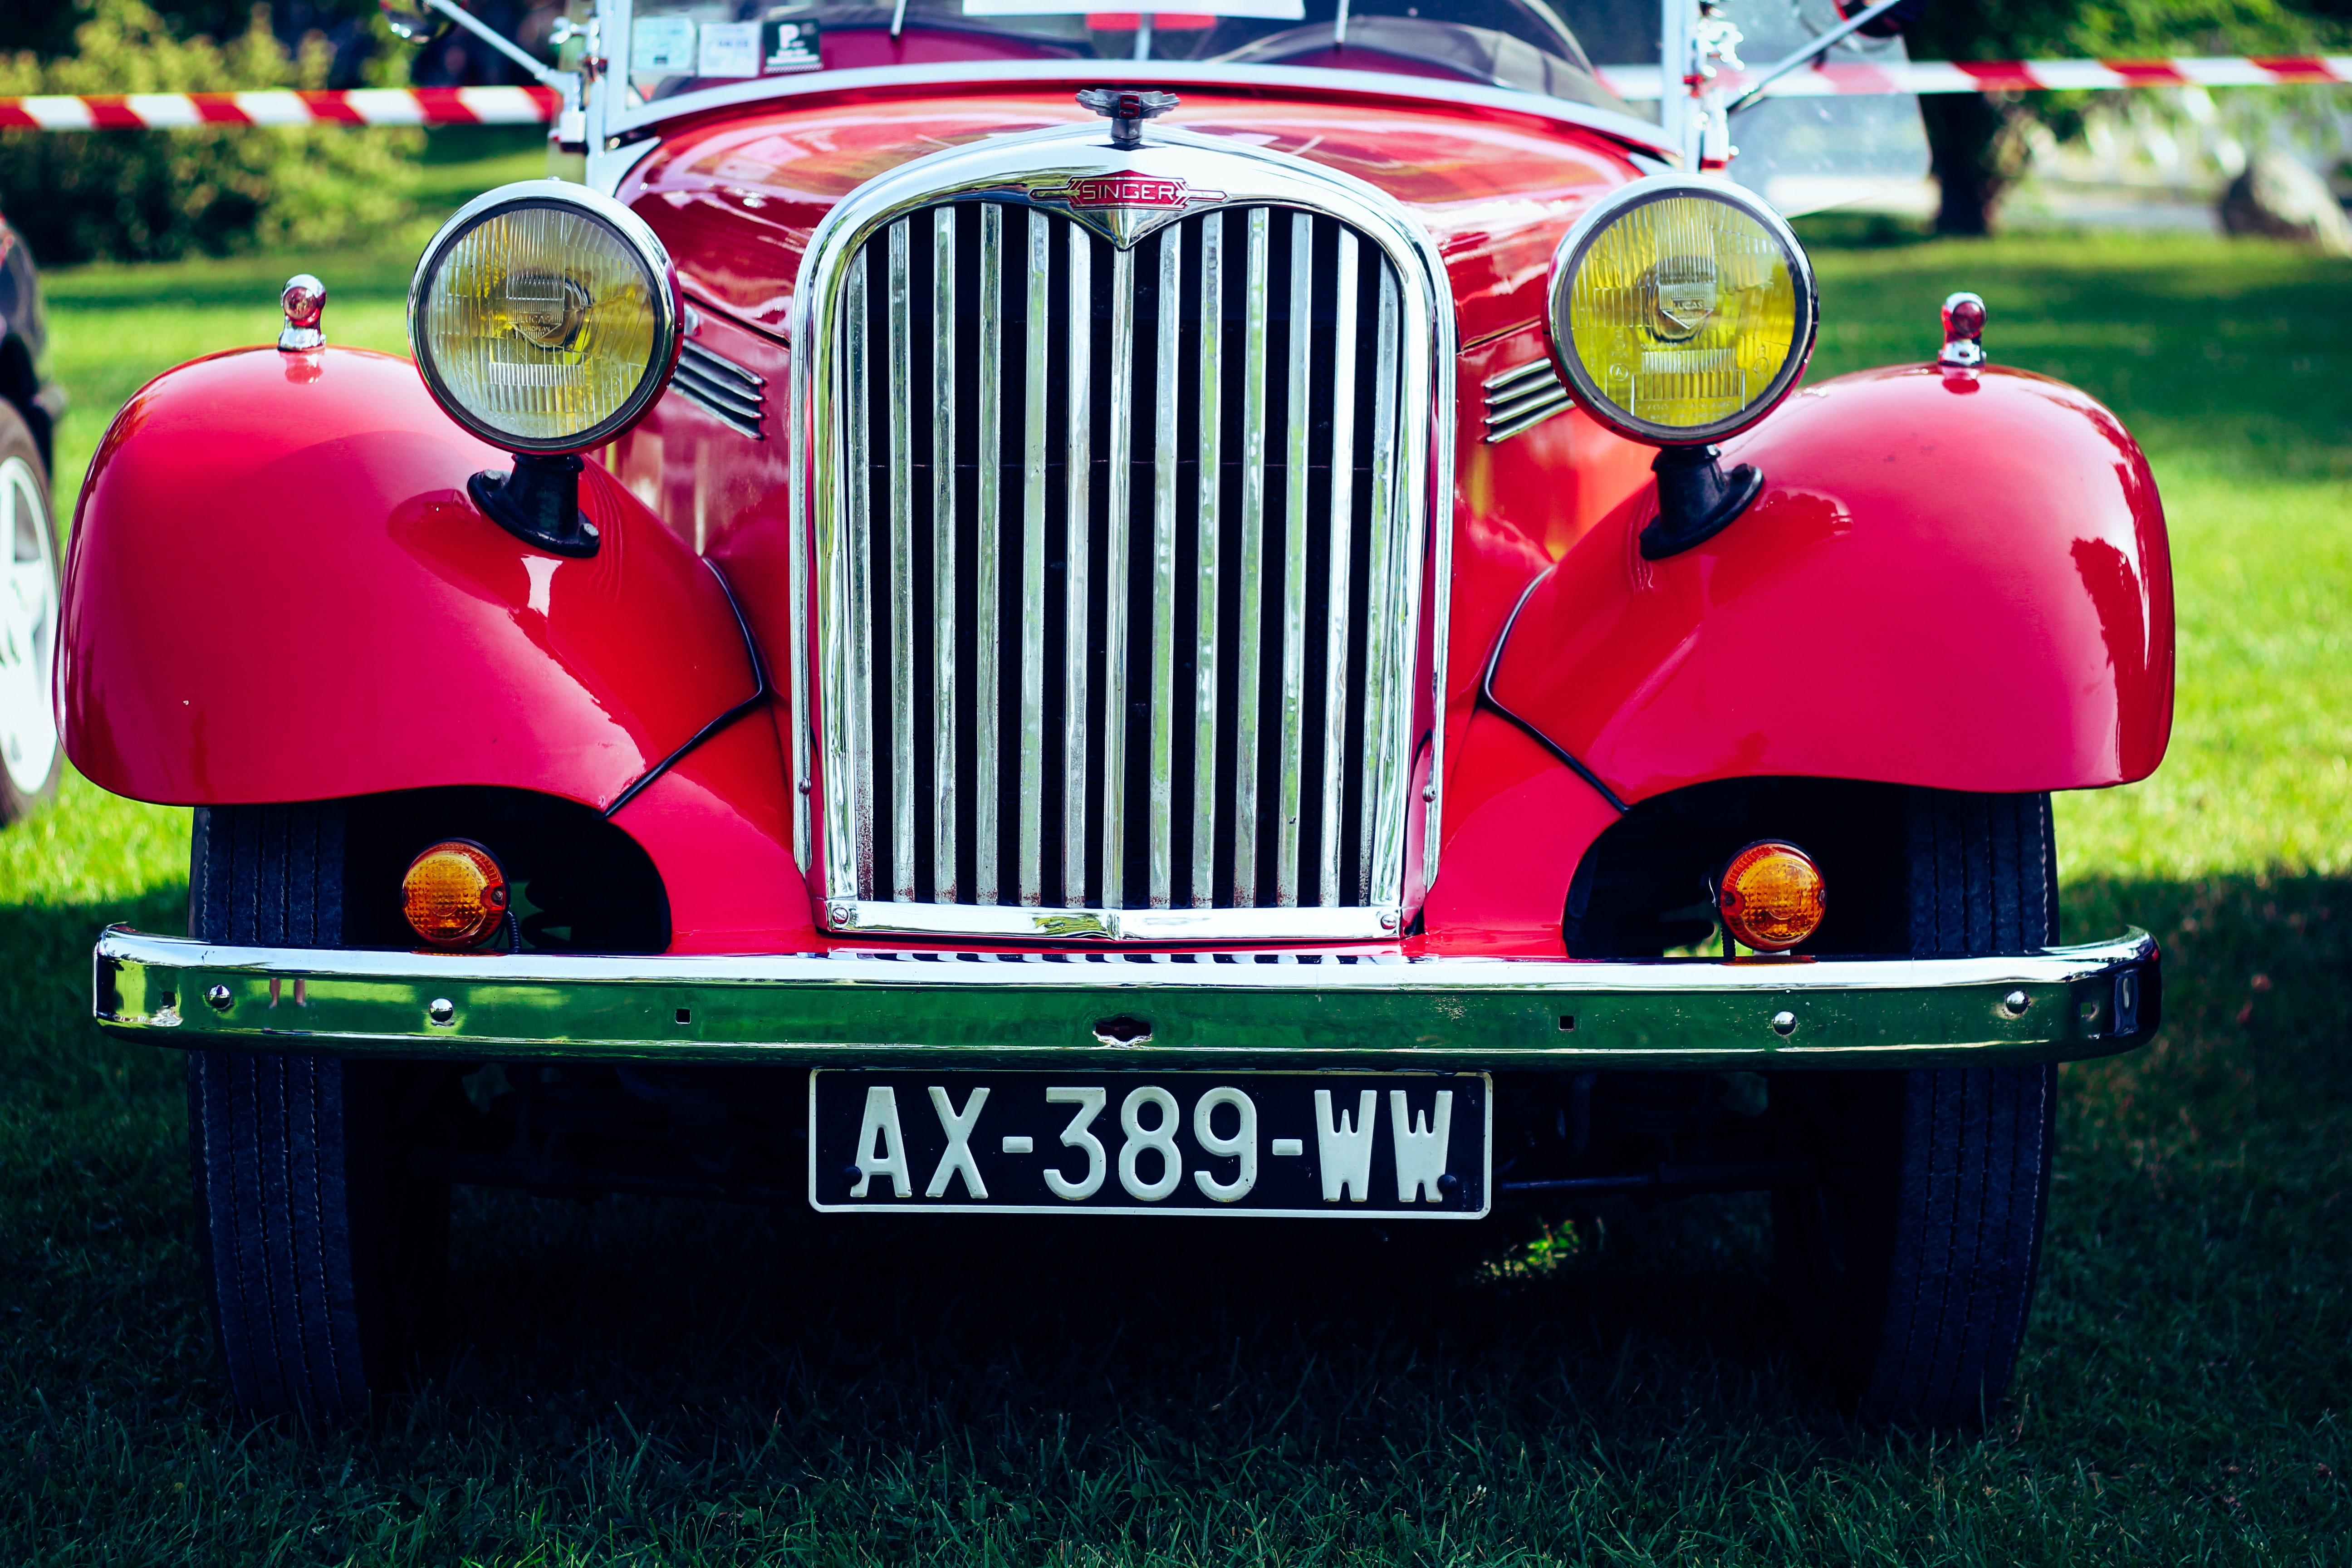 Classic Red Car on Green Grass, Auto, Hood, Vintage, Vehicle, HQ Photo